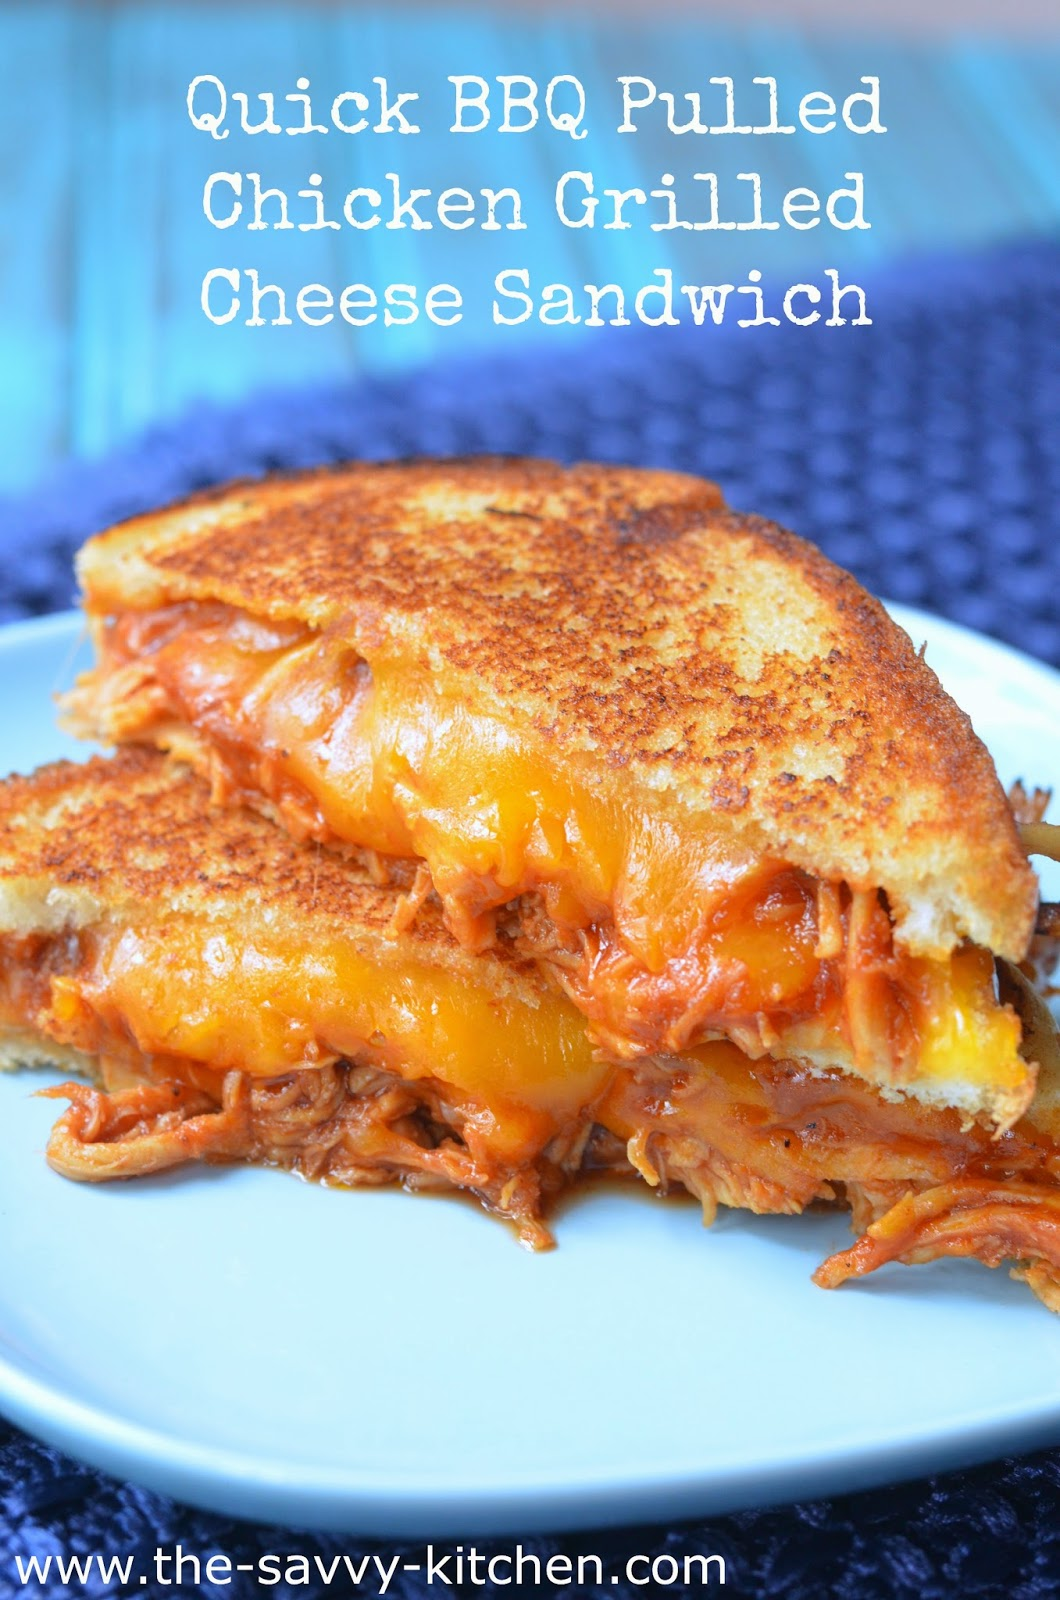 The Savvy Kitchen: Quick BBQ Pulled Chicken Grilled Cheese Sandwich